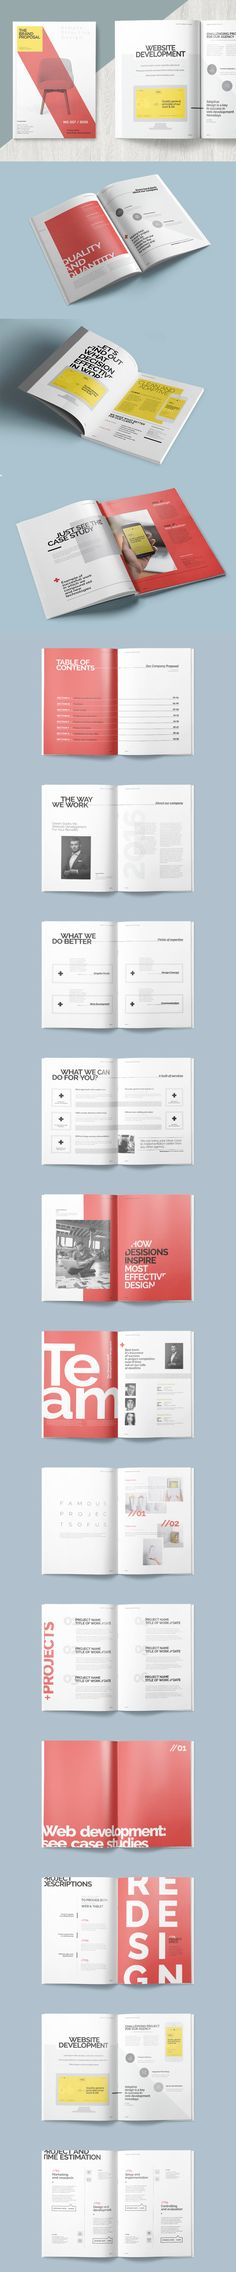 A4 & US Letter Project Proposal Template InDesign INDD | business ...